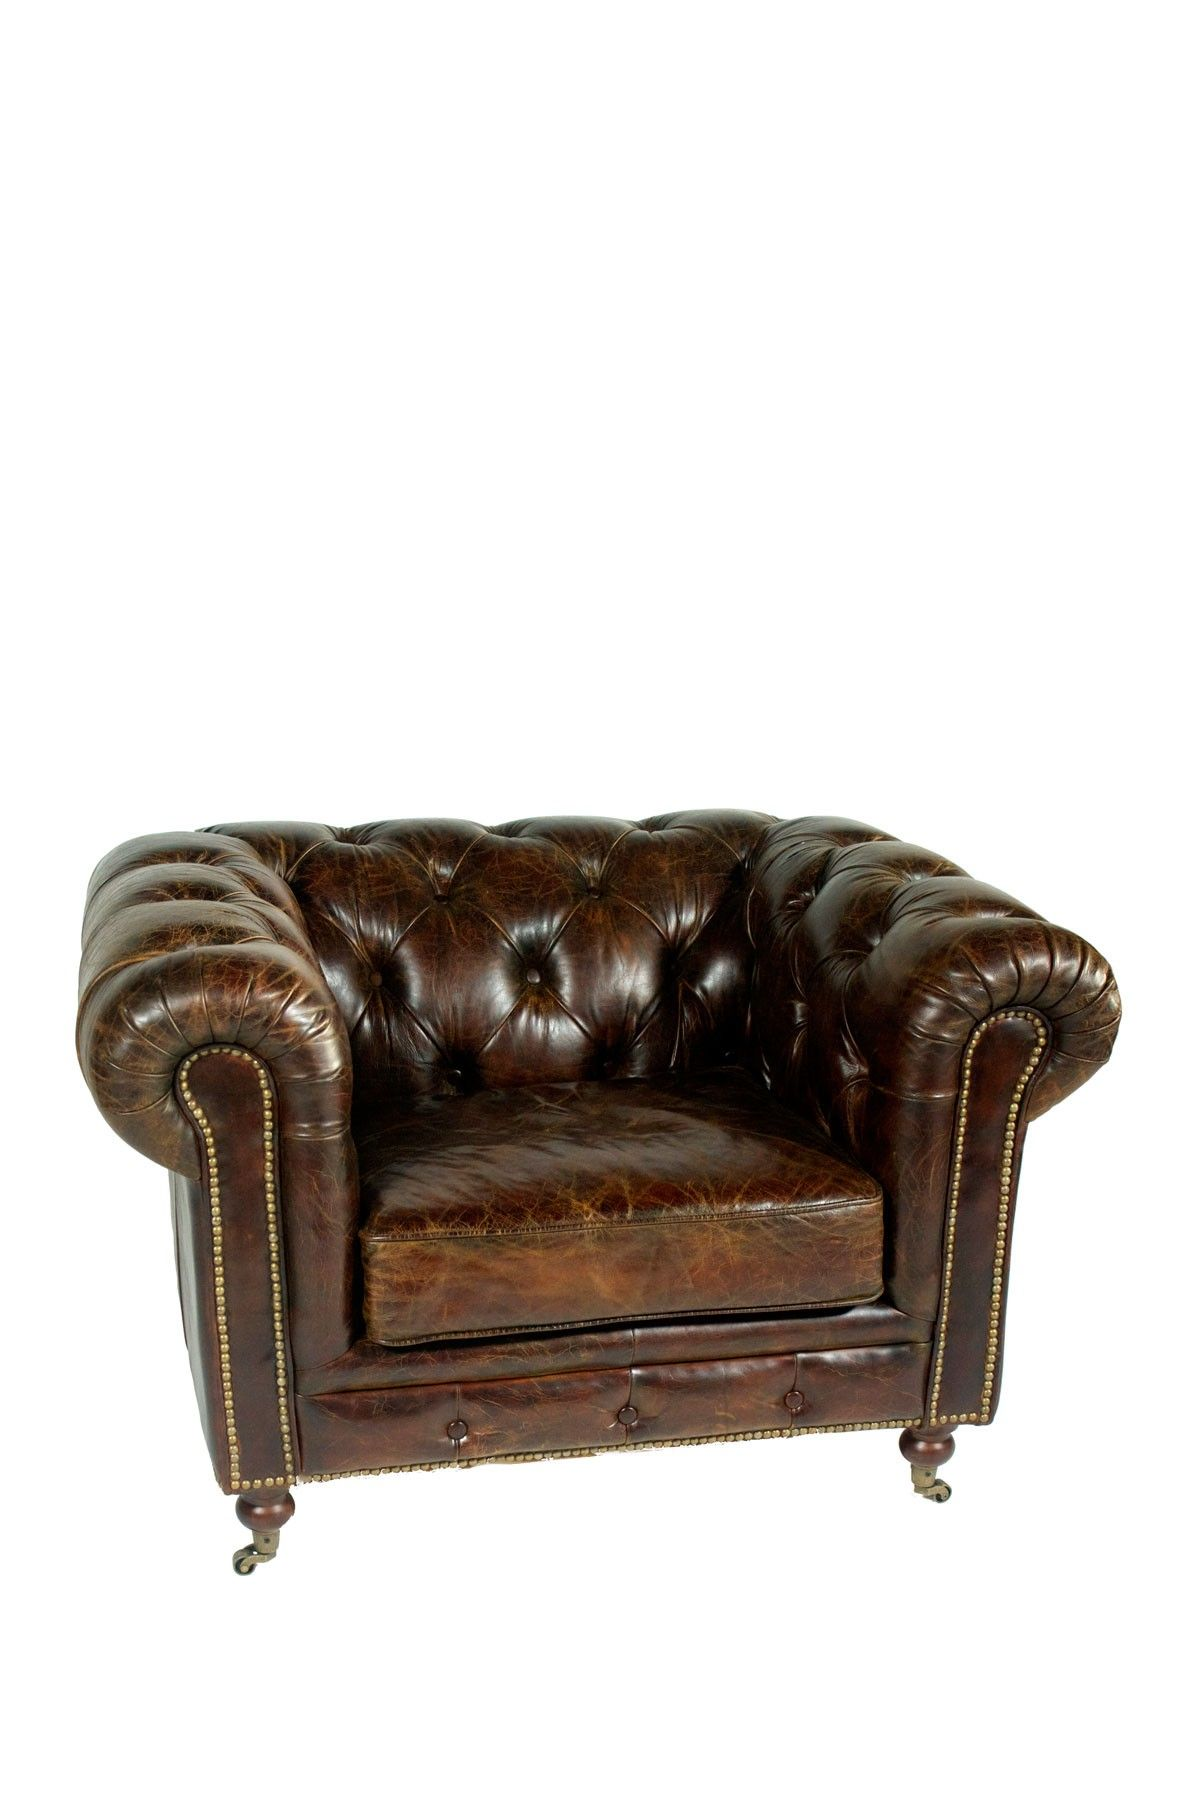 Chesterfield Sofa Texture Vintage Style Leather Sofa Vintageather Sofa Blog Sofas